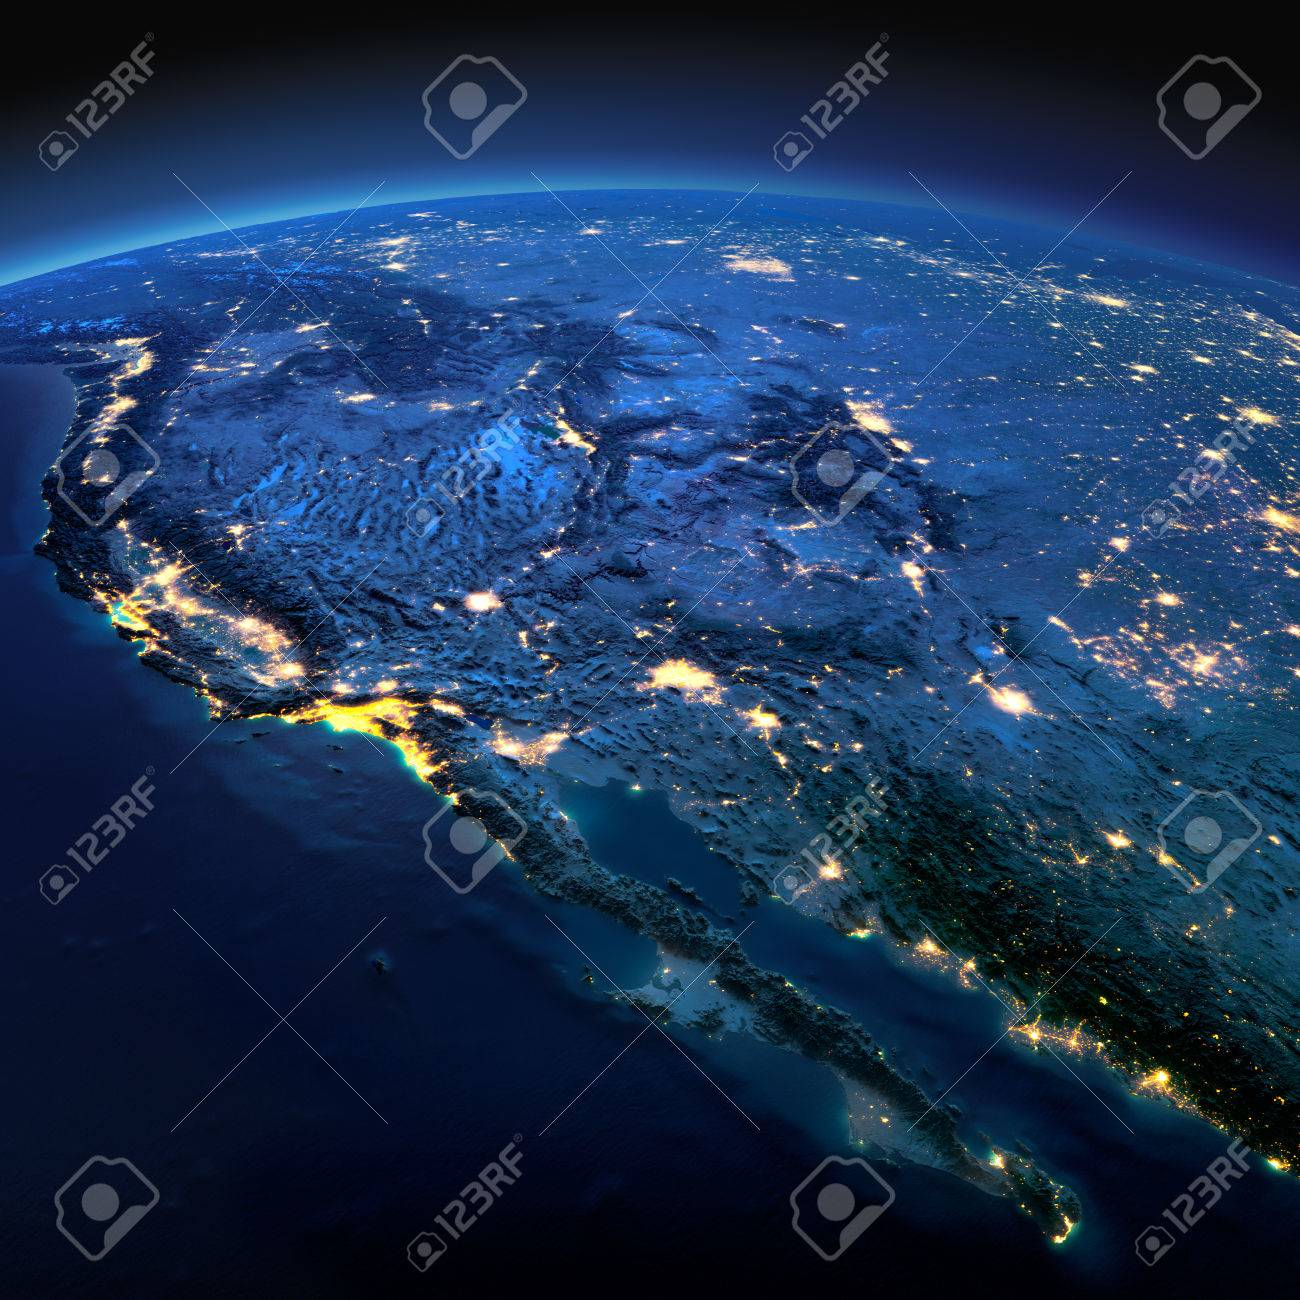 Night planet Earth with precise detailed relief and city lights illuminated by moonlight. Gulf of California, Mexico and the western U.S. states. - 49133985